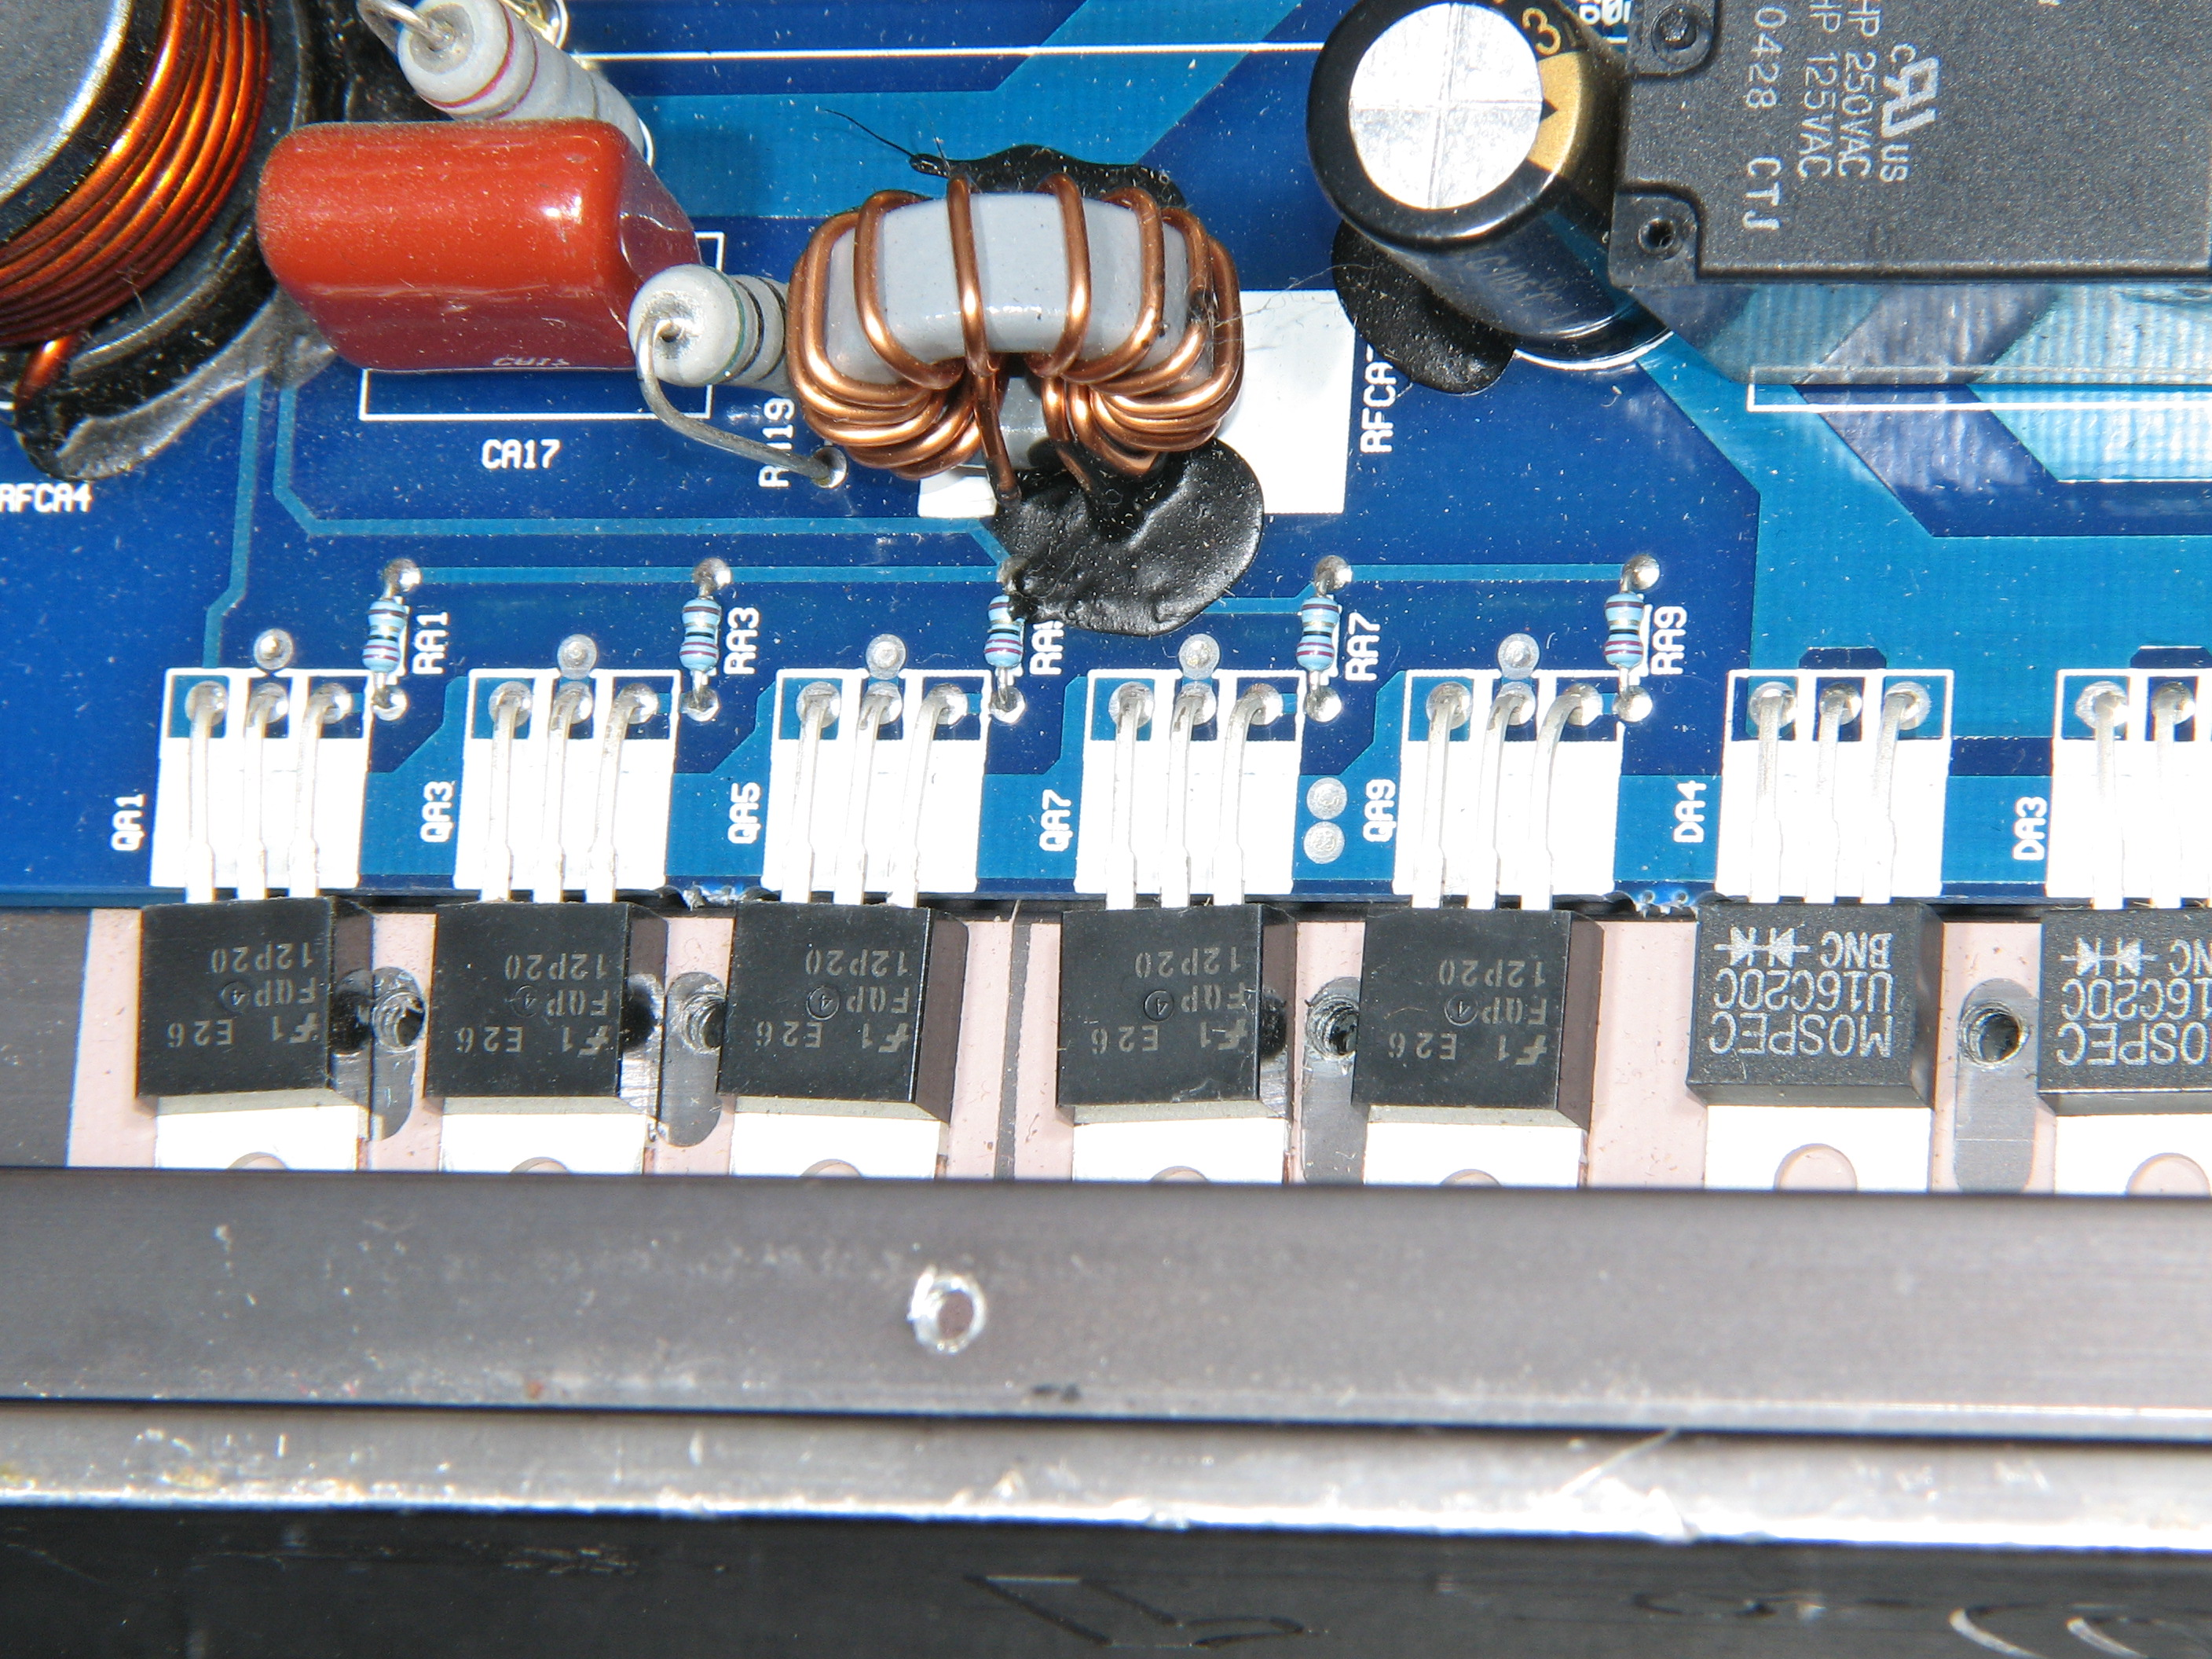 Autotek Mean Machine Mx15001 Diyaudio 1 Ohm Wiring Diagram These Are From A 3000 But They Should Be The Same I Dont Have